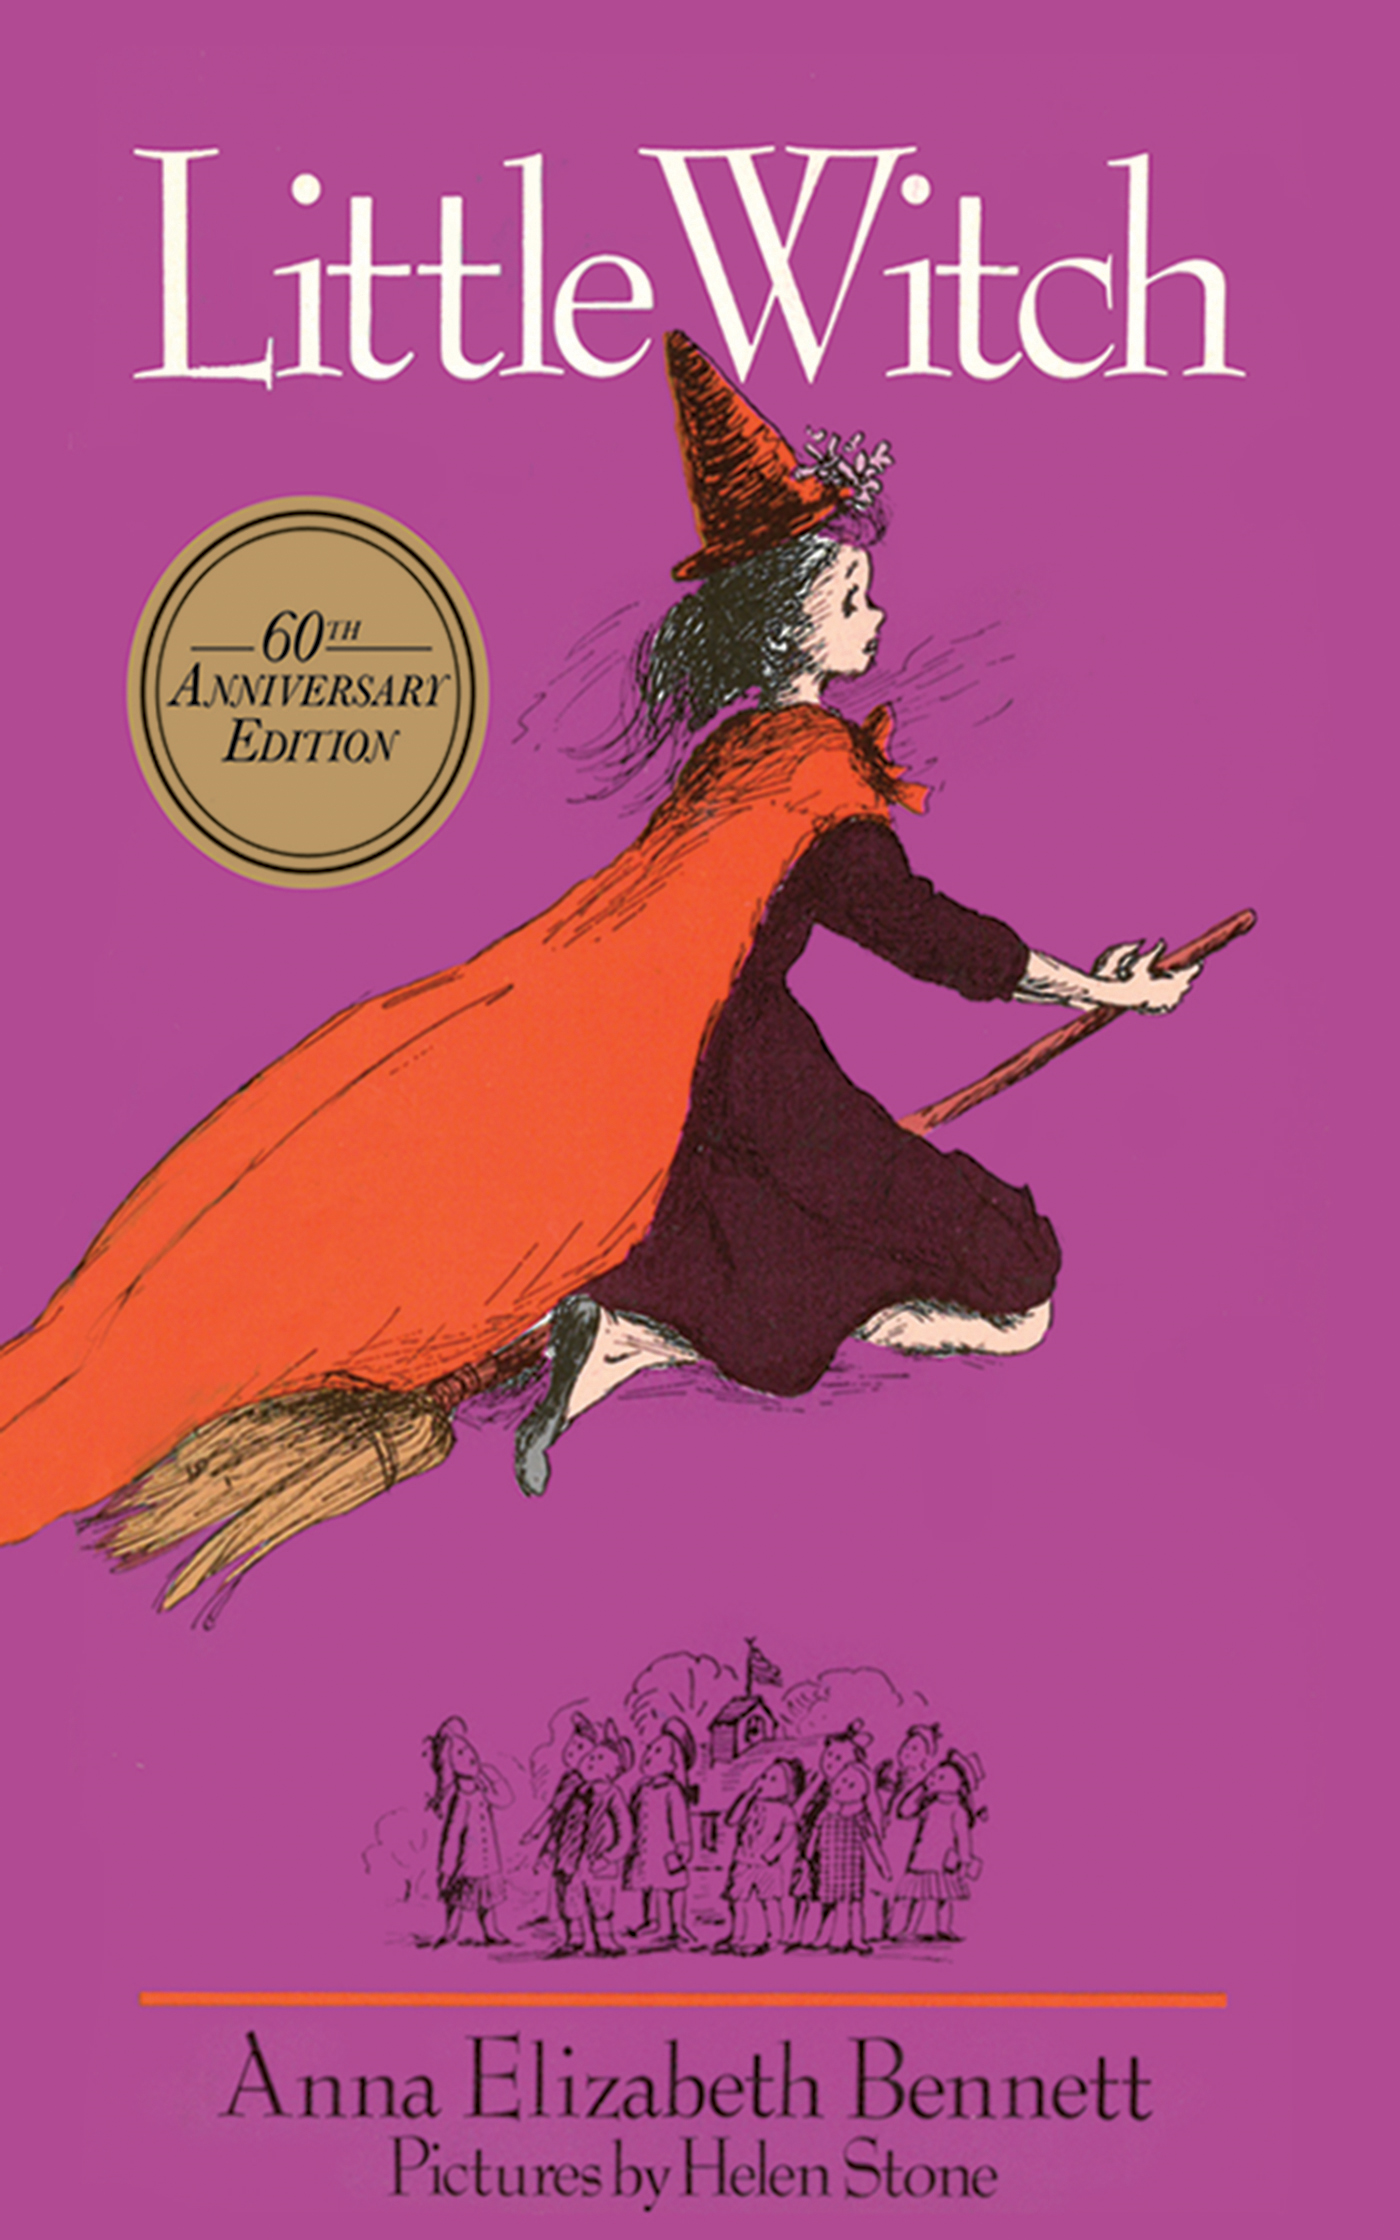 Little Witch 60th Anniversay Edition